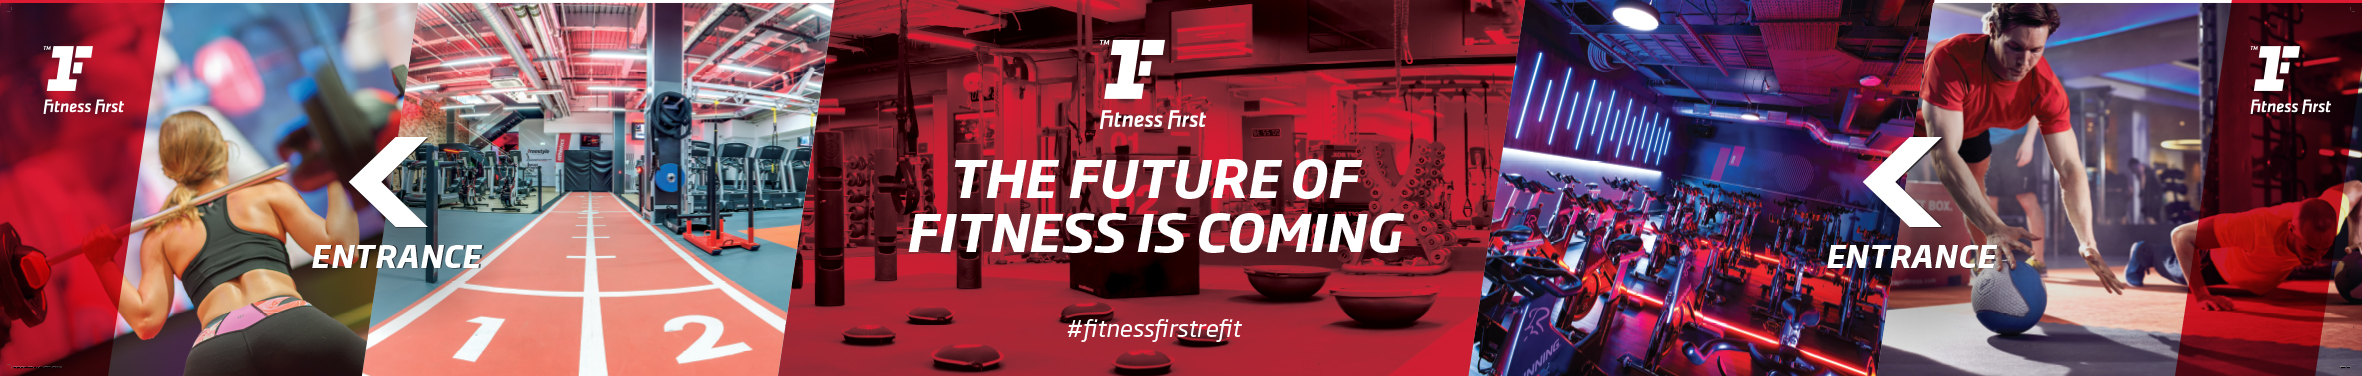 Fitness First Hoarding